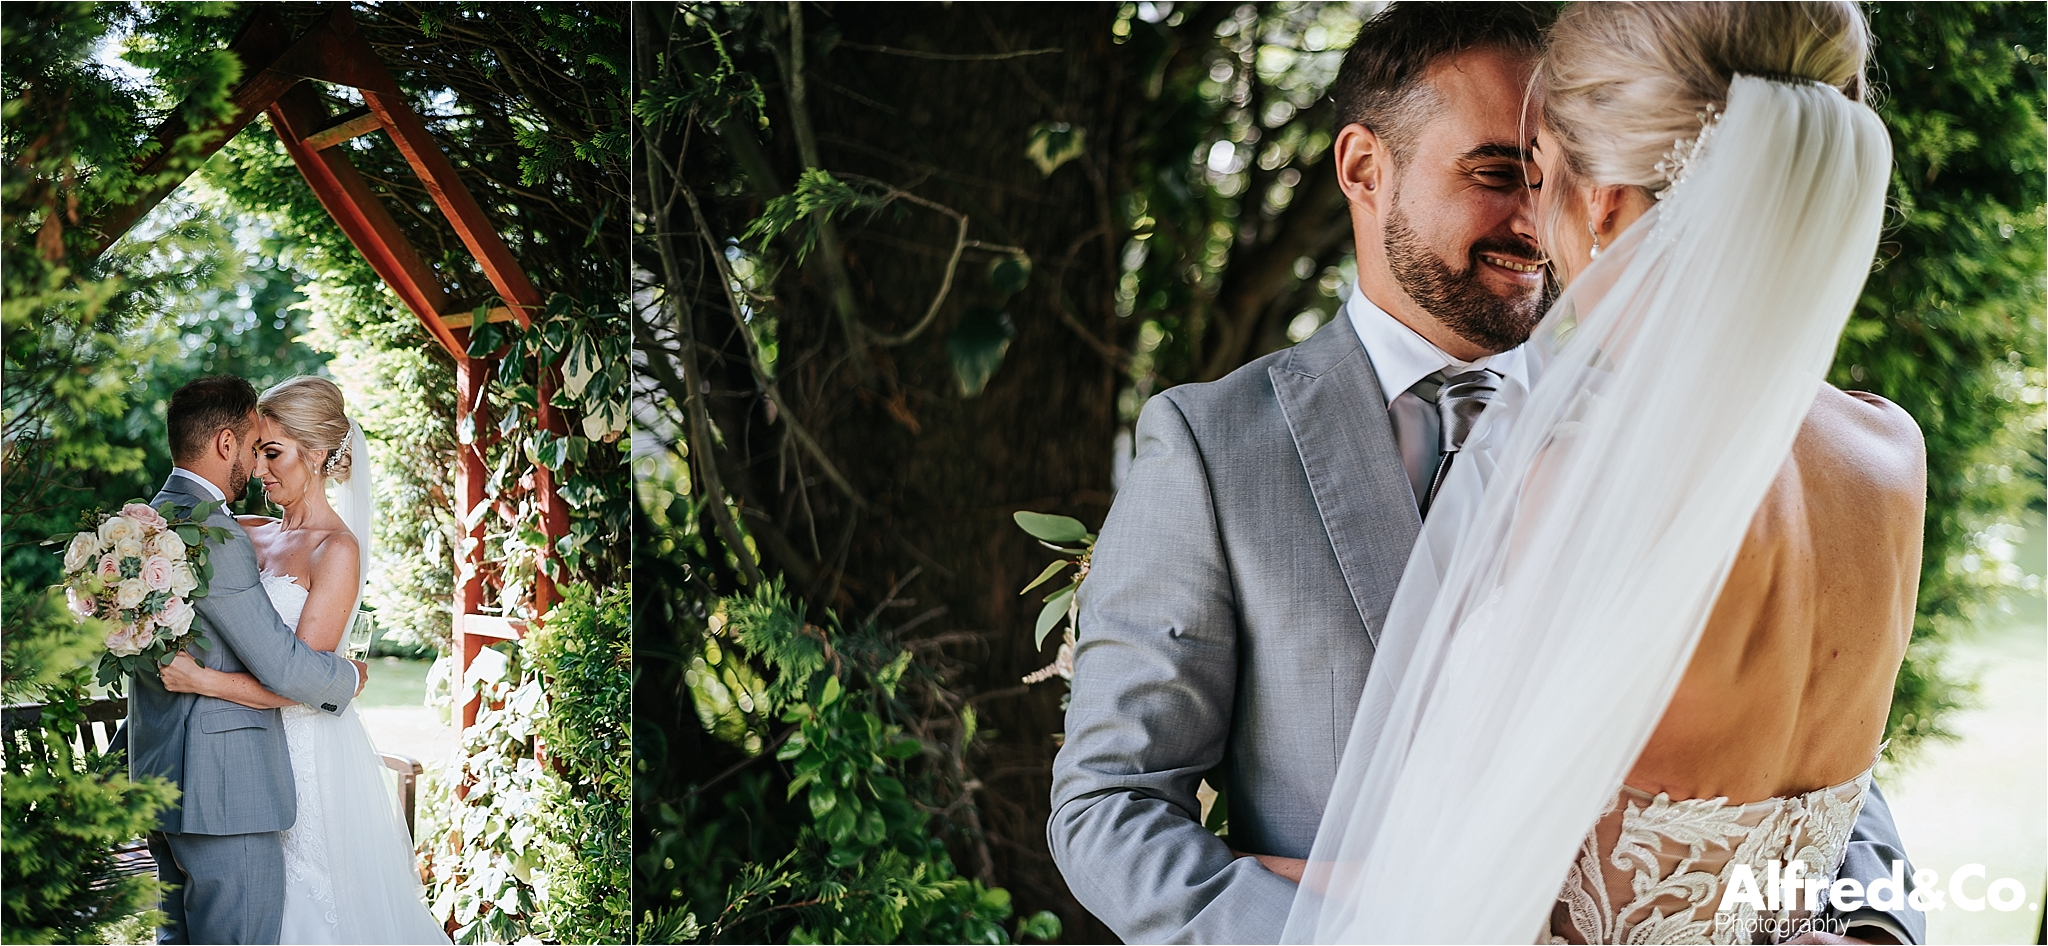 Relaxed wedding at the dunkenalgh, accrington